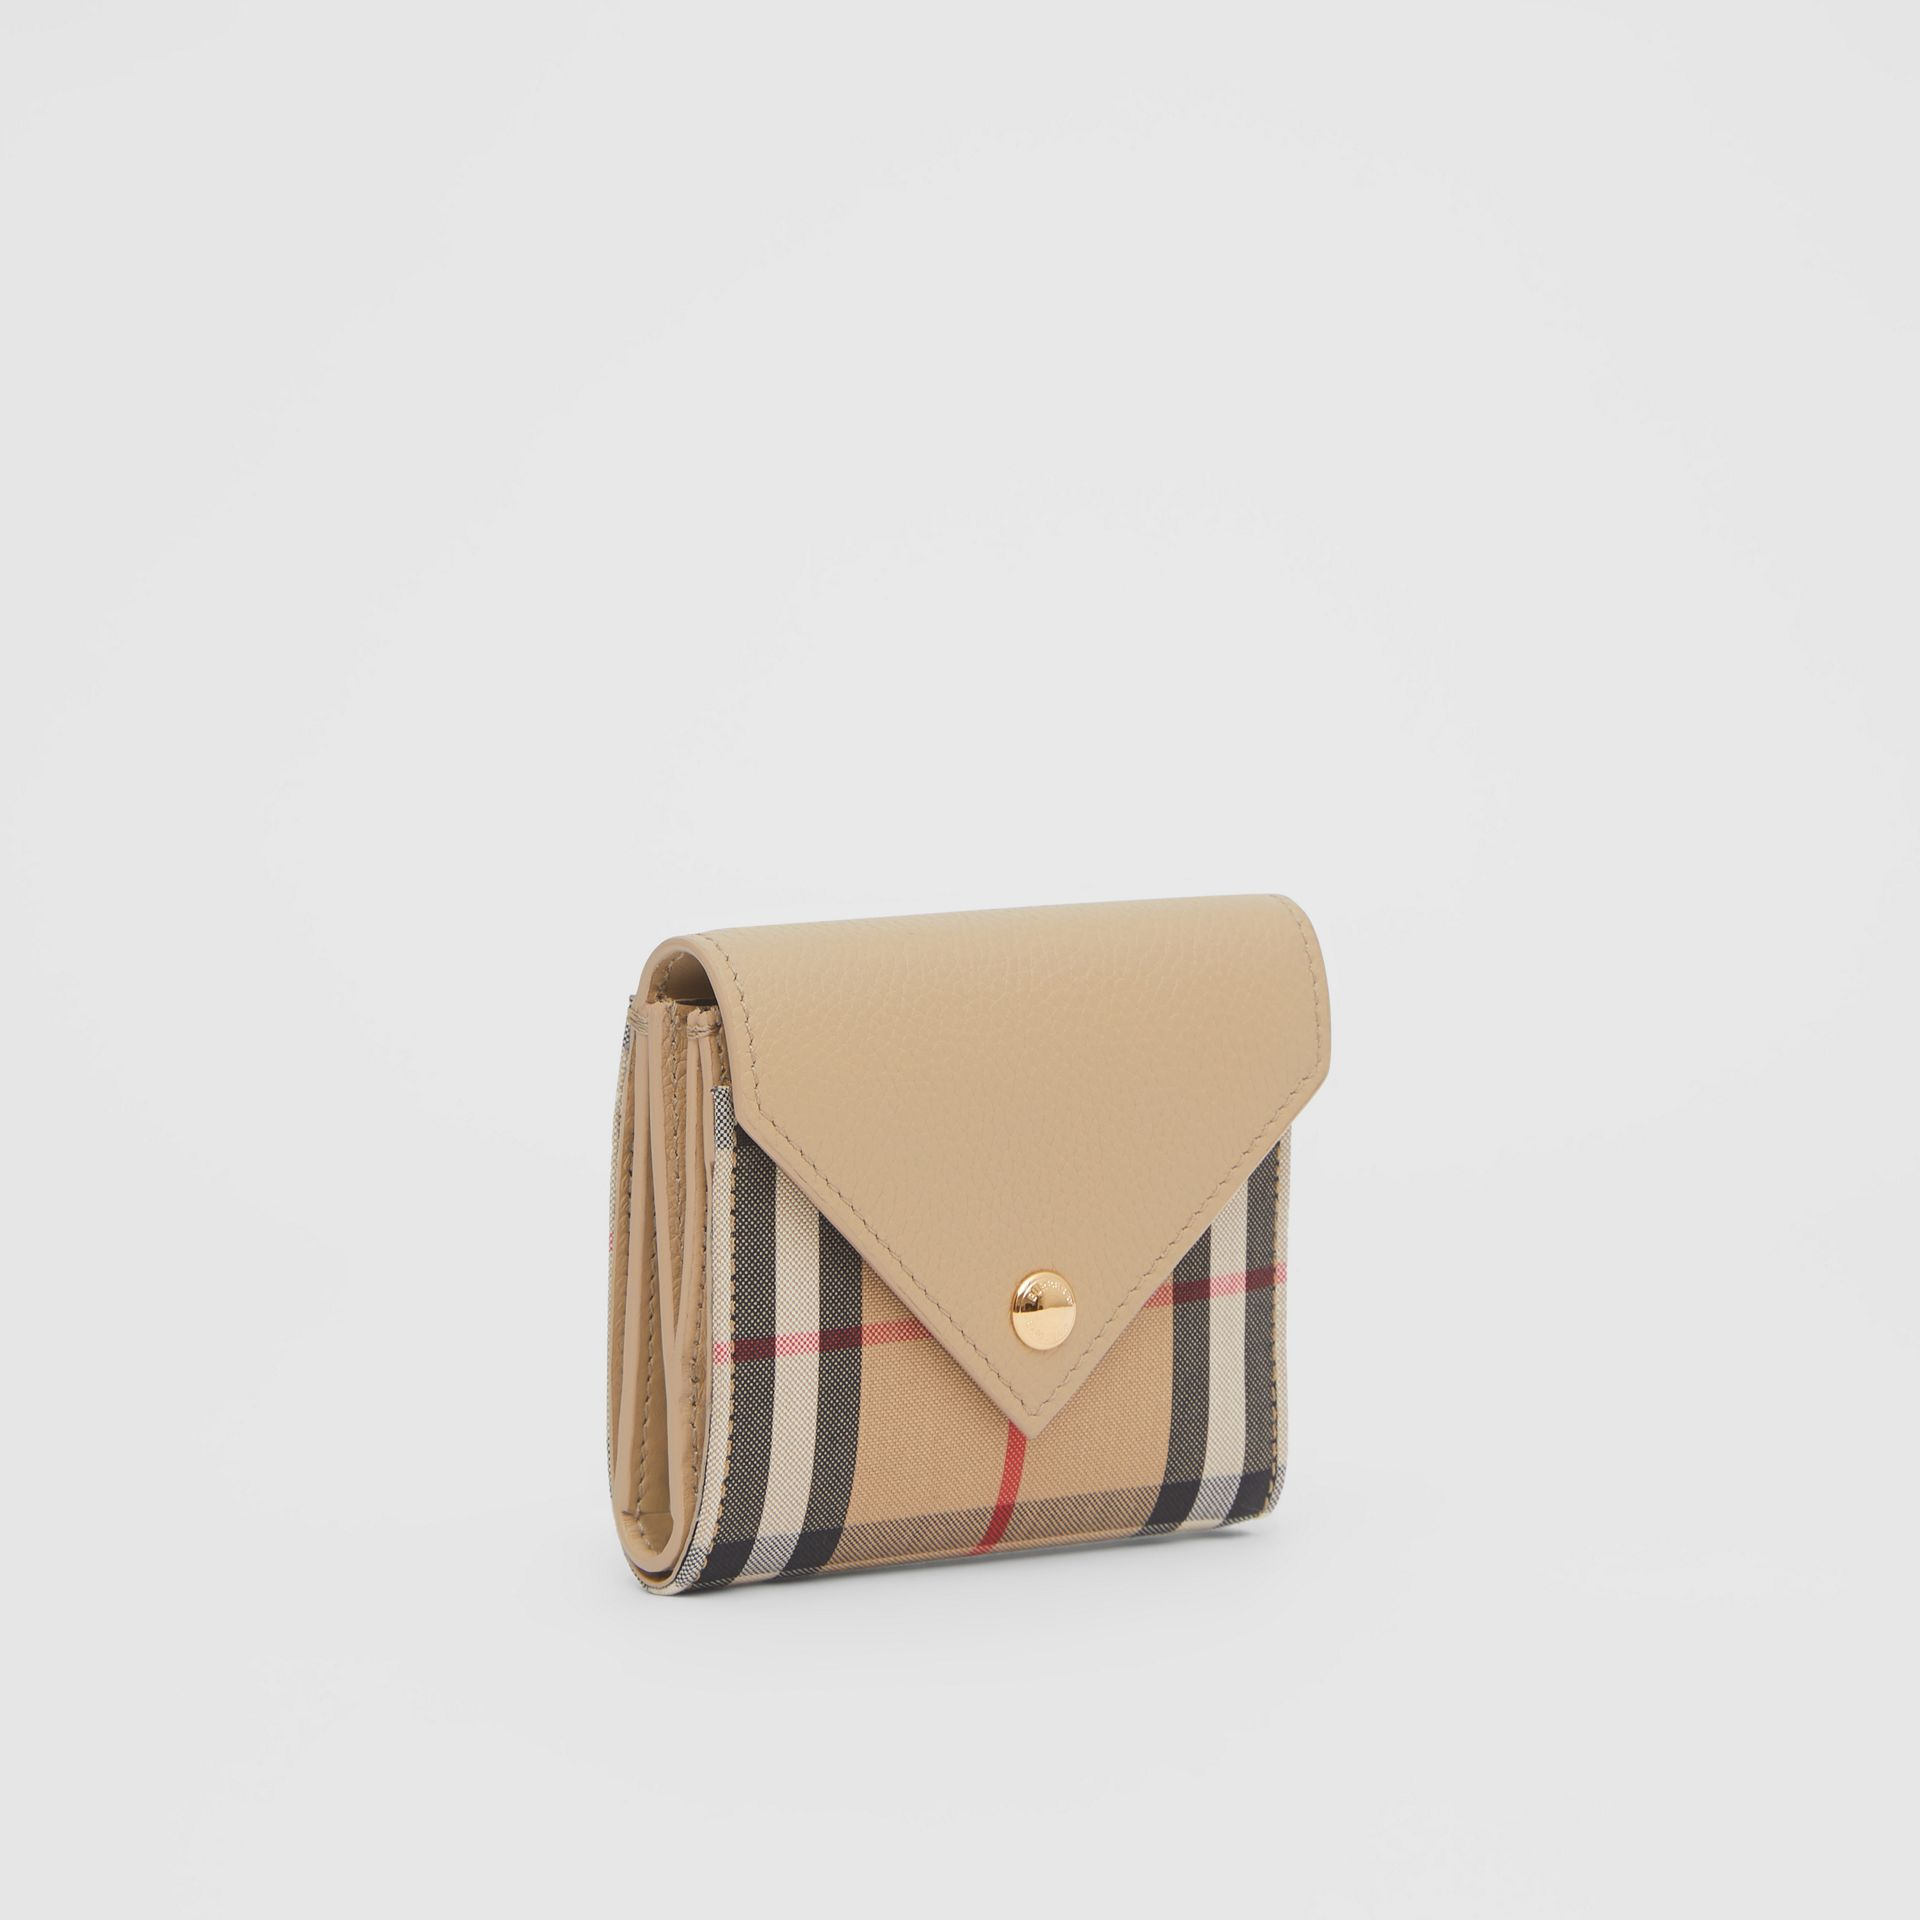 Vintage Check and Grainy Leather Folding Wallet in Light Beige - Women | Burberry Hong Kong S.A.R - gallery image 3